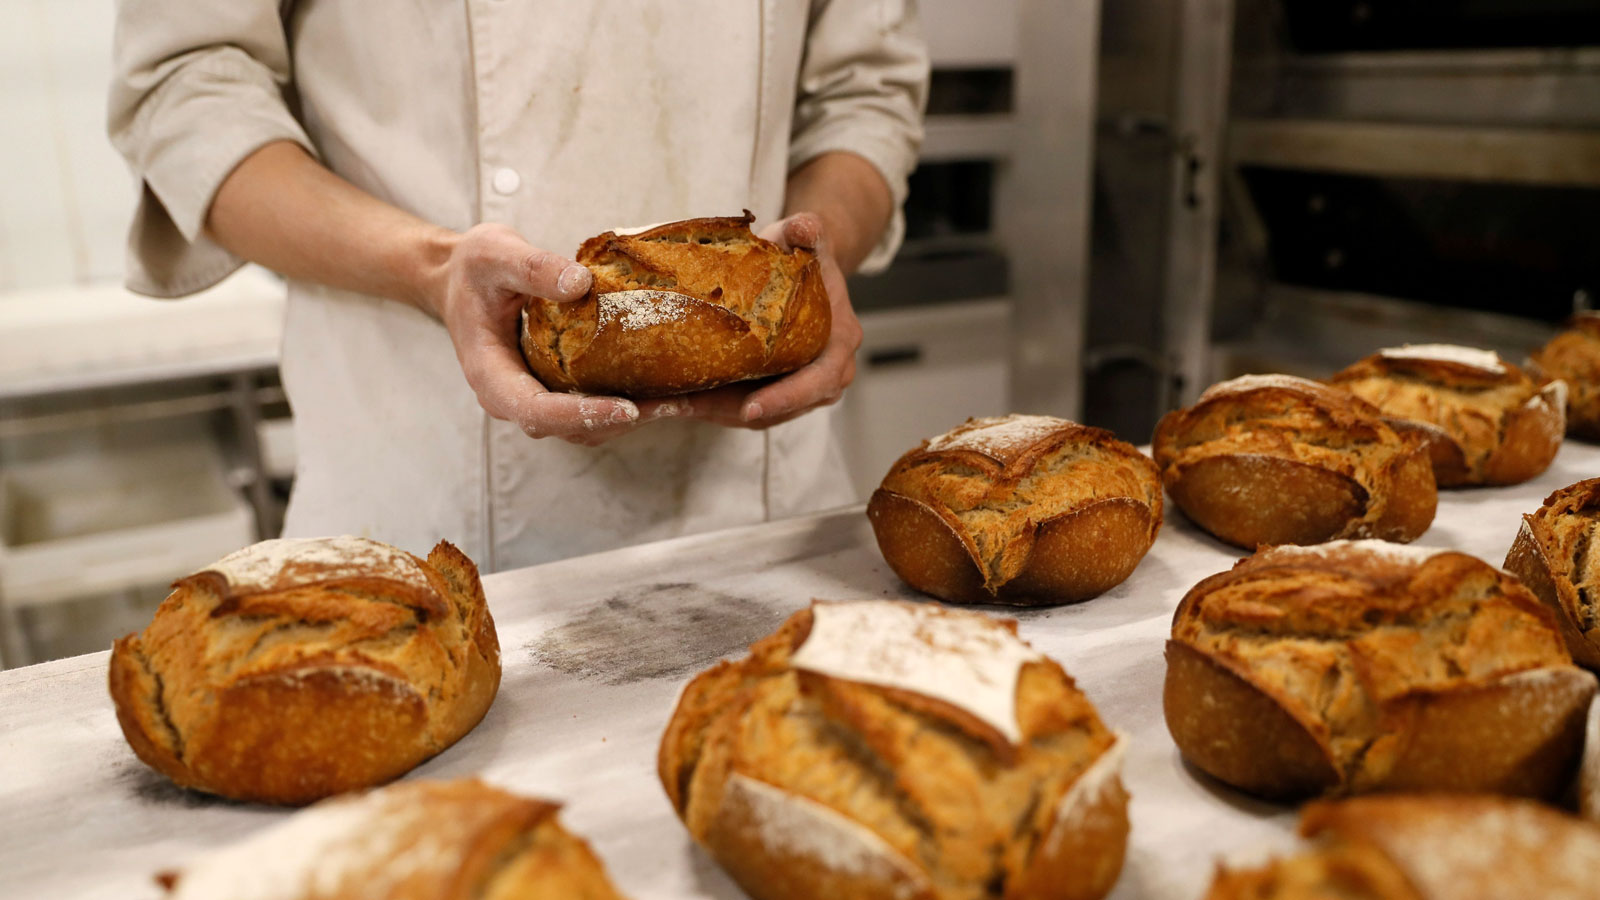 Corporate Food In Paris Why The French Are Wary Of Big Brioche